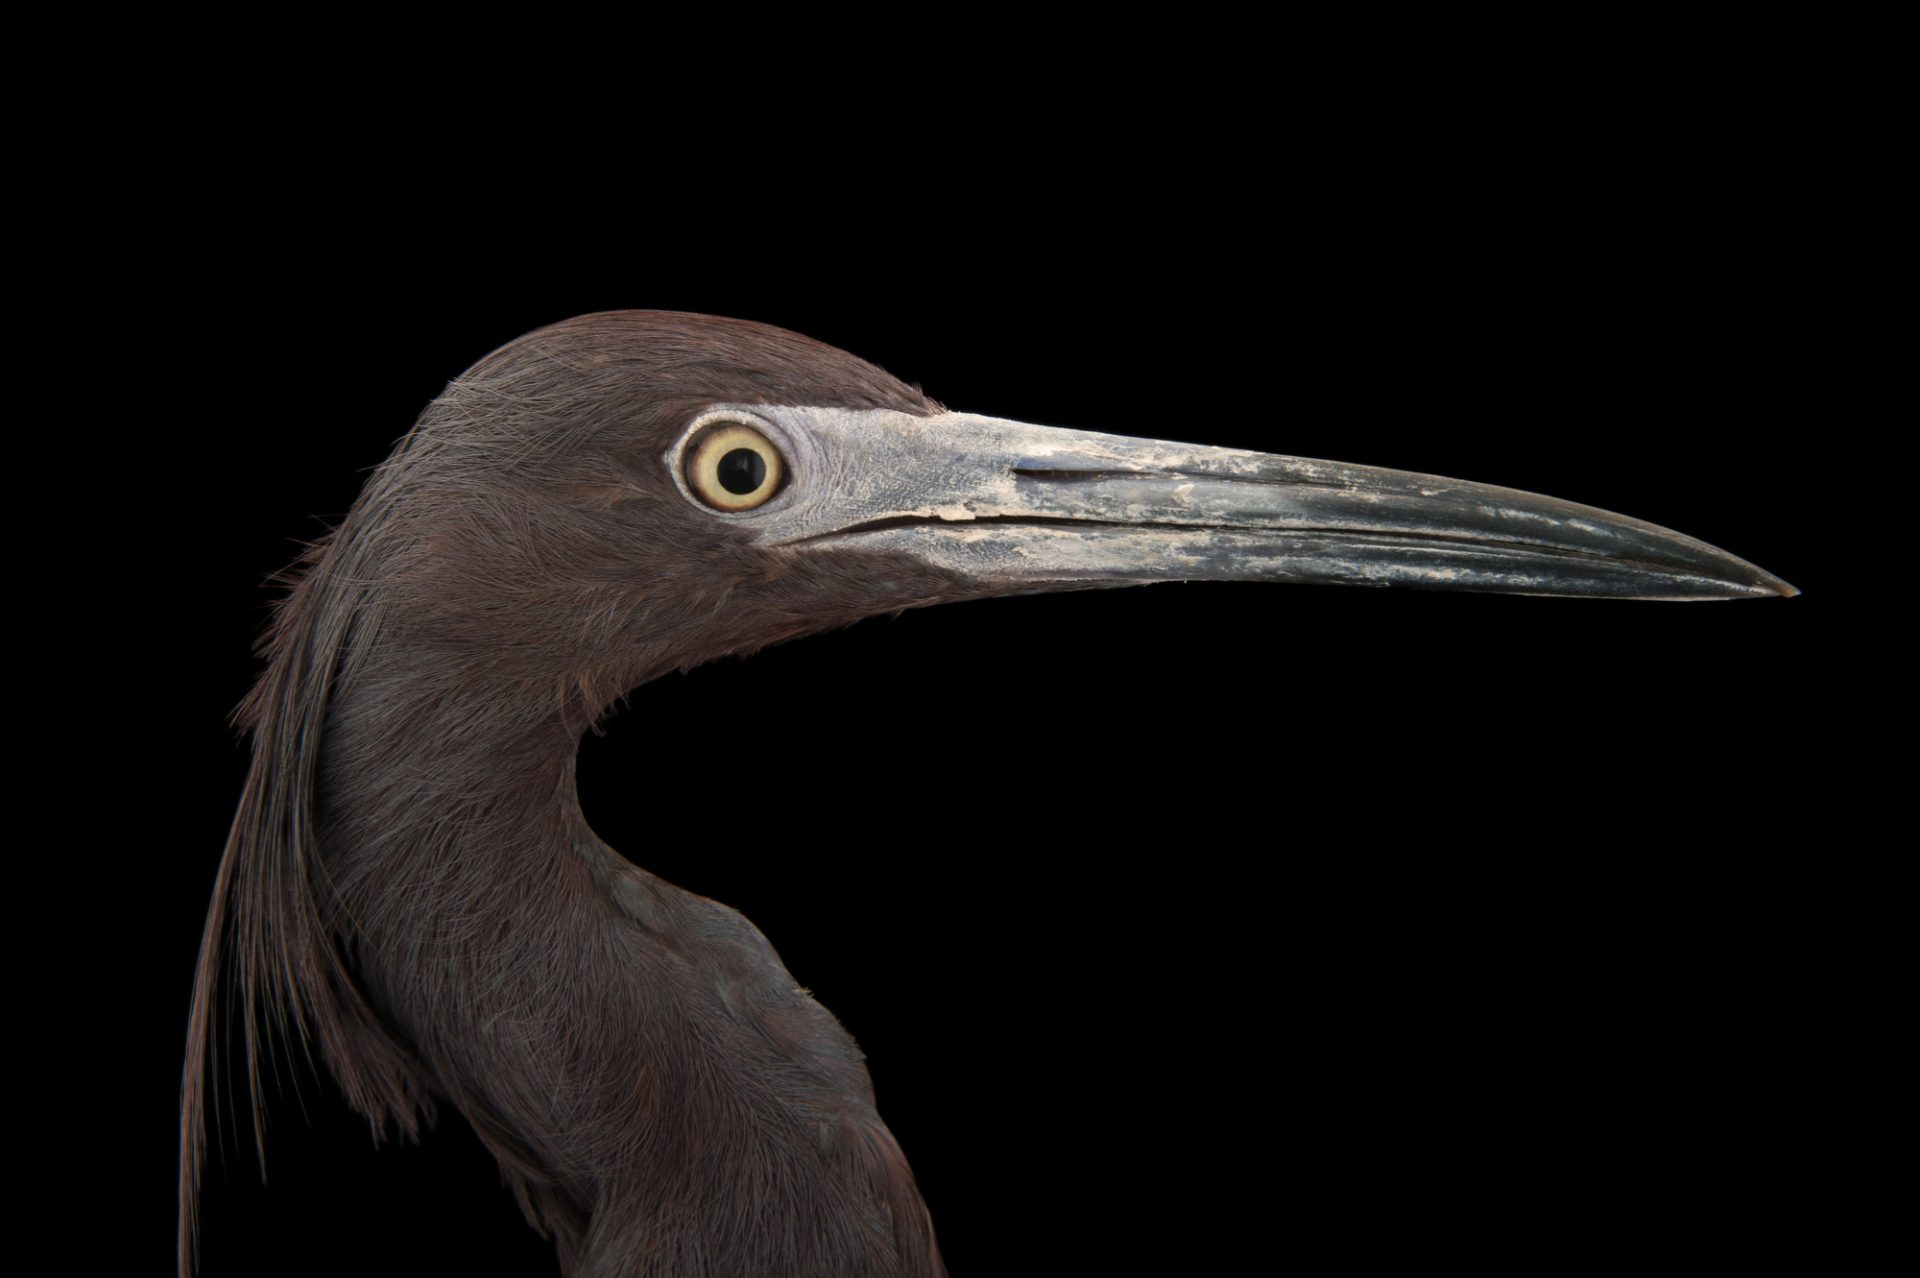 Photo: Little blue heron (Florida caerulea) at the National Aviary of Colombia.